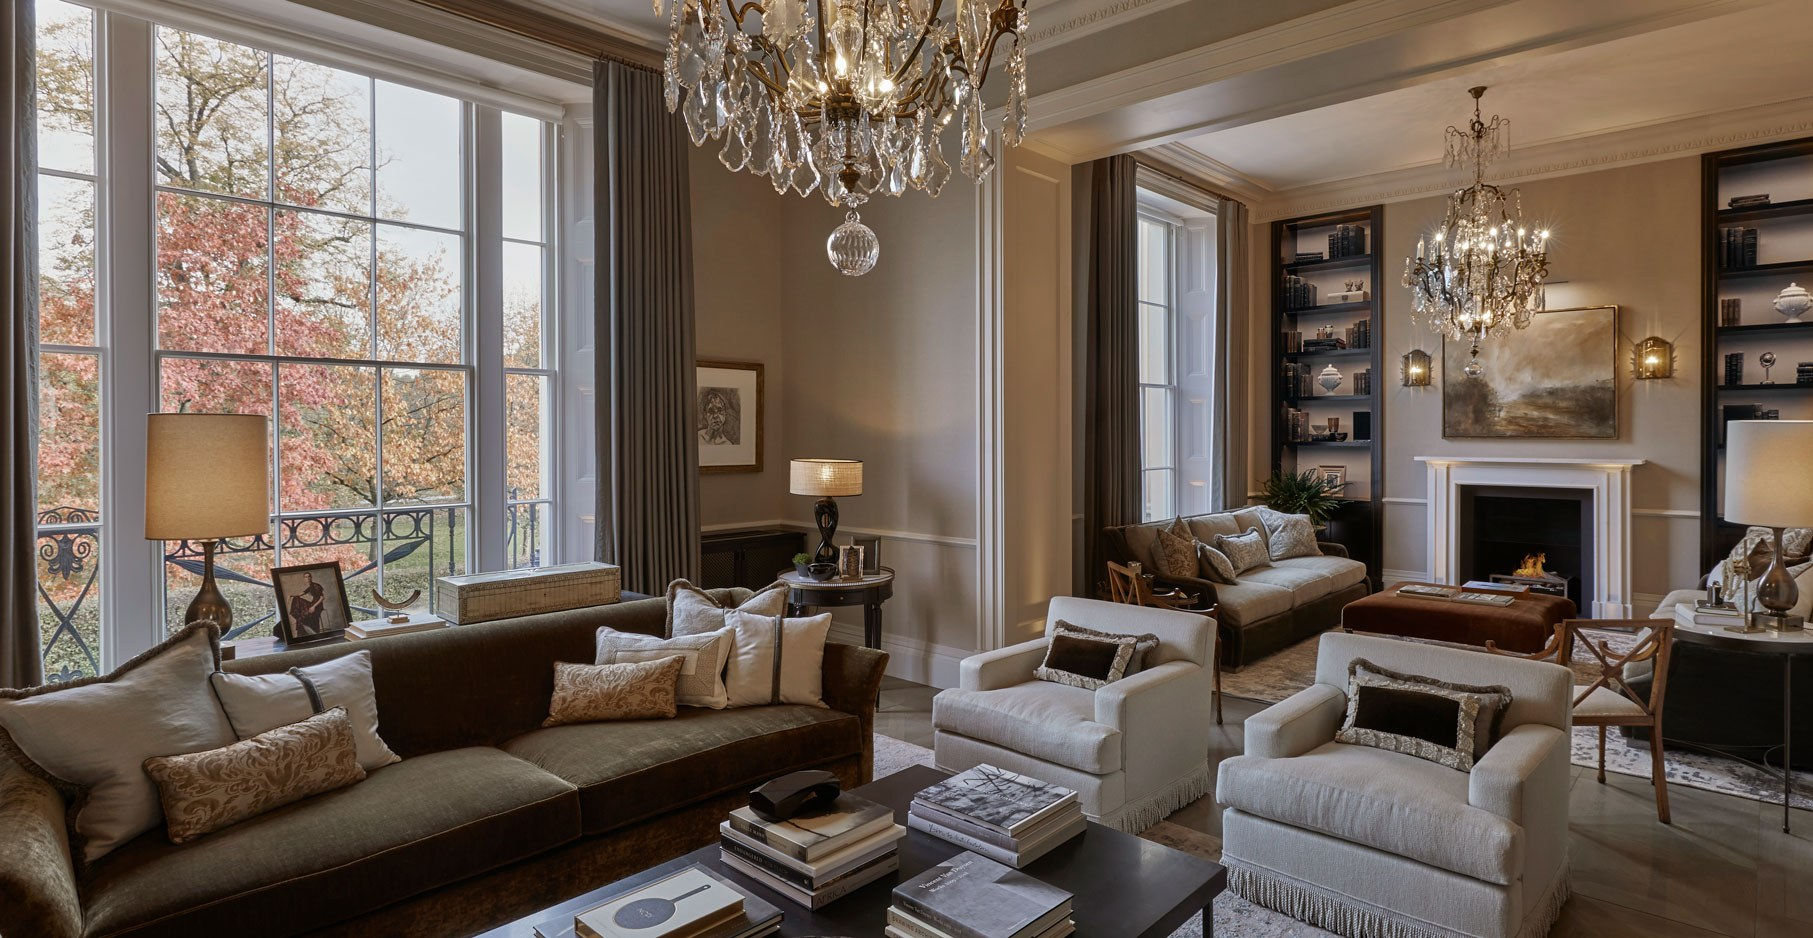 The Most Inspire Interior Design Projects By Louise Bradley